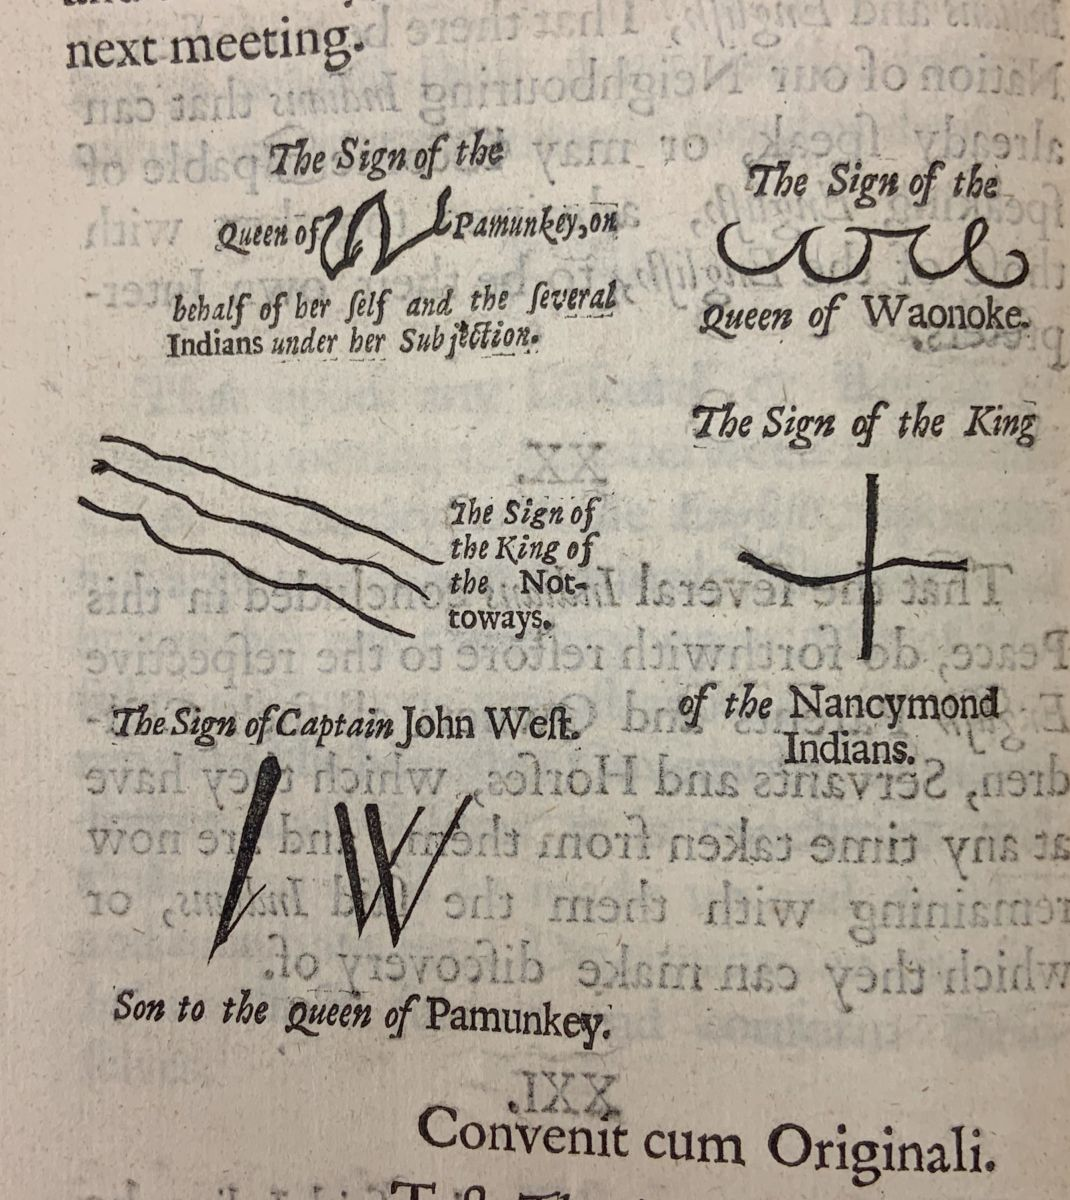 Includes the aforementioned signatures from the previous photo, plus the sign of the Queen of Waonoke (an elongated curlicue pattern), Sign of the King of the Nancymond Indiands (a cross), and the sign of John West, son of the Queen of Pamunkey (a vertical slash and a 'W' shape).